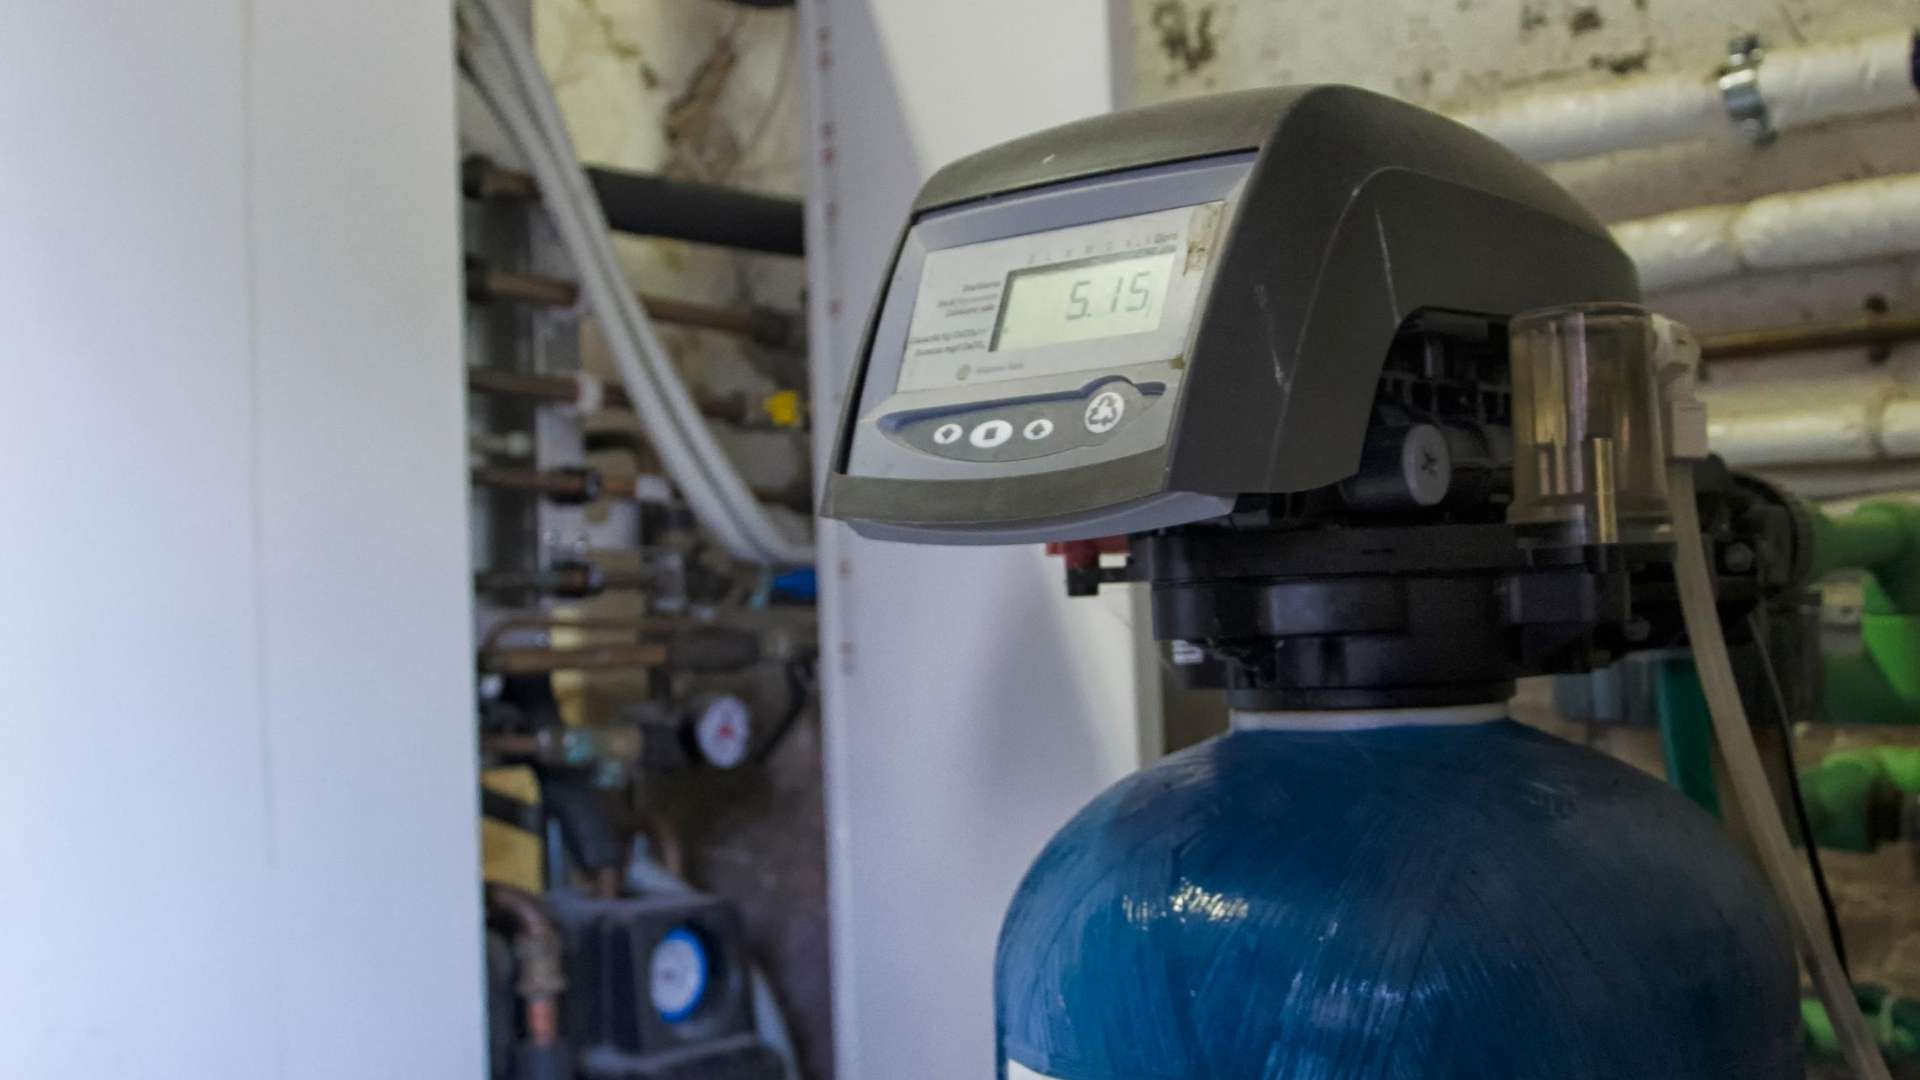 Does a water softener remove chlorine